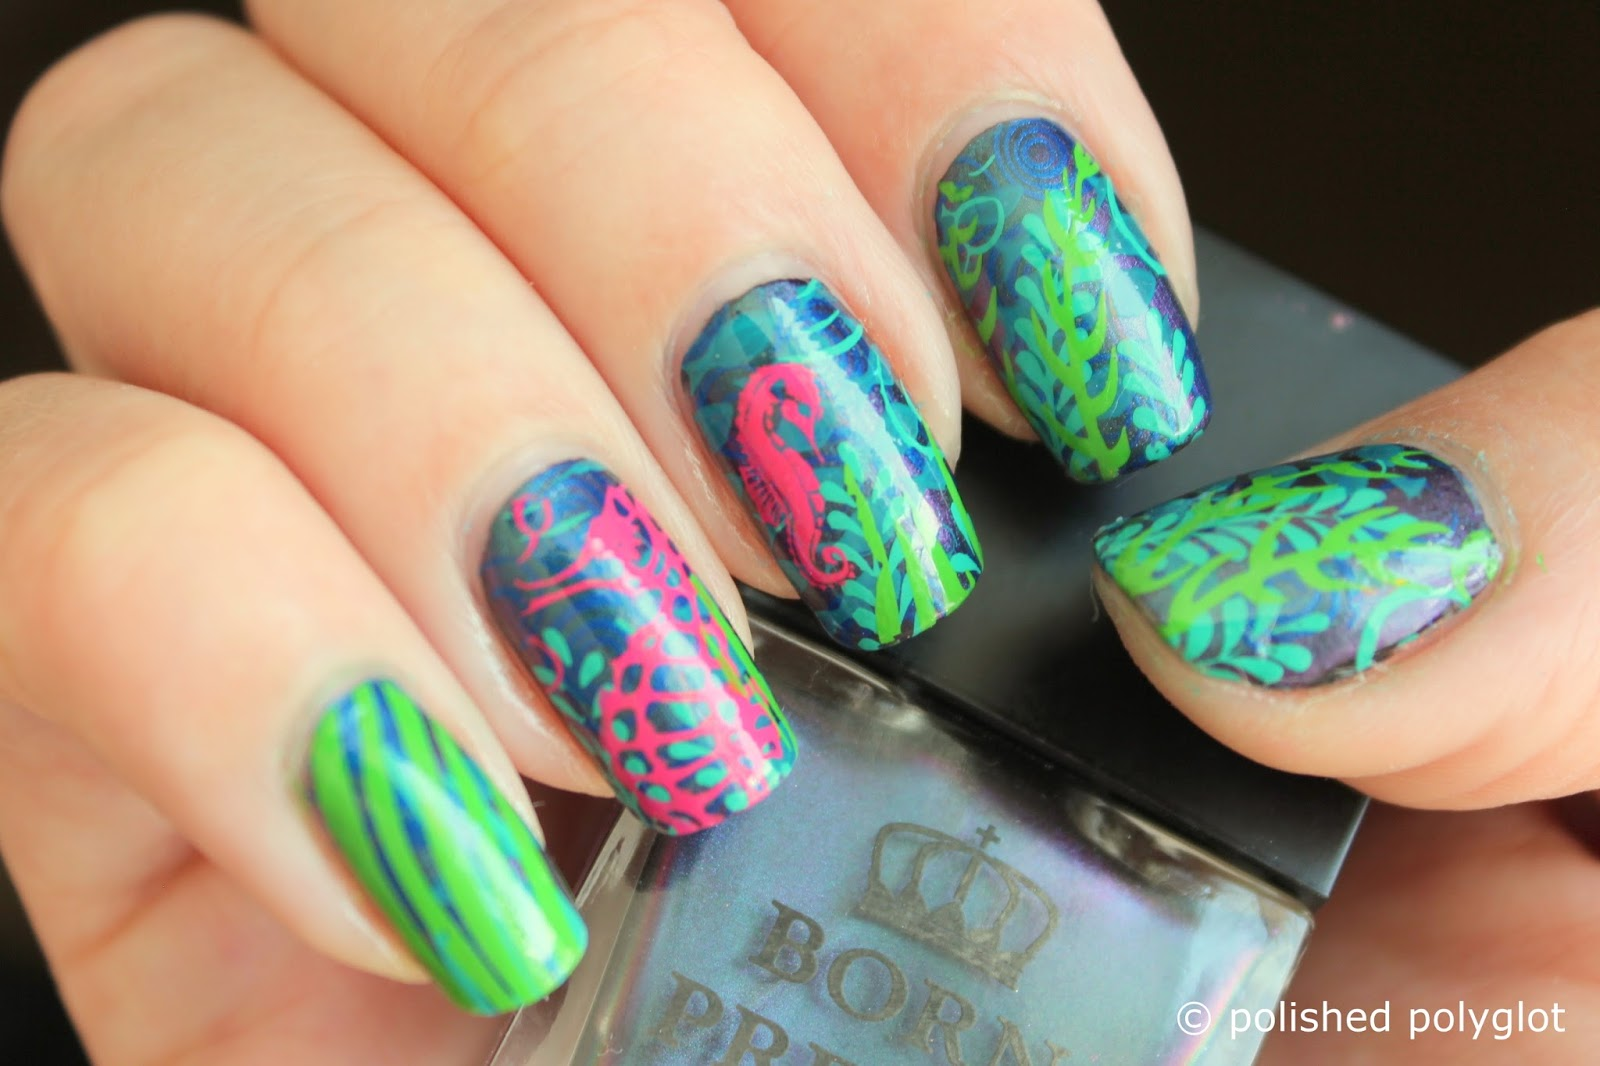 Nail art │Things in the water [layered stamping] / Polished Polyglot